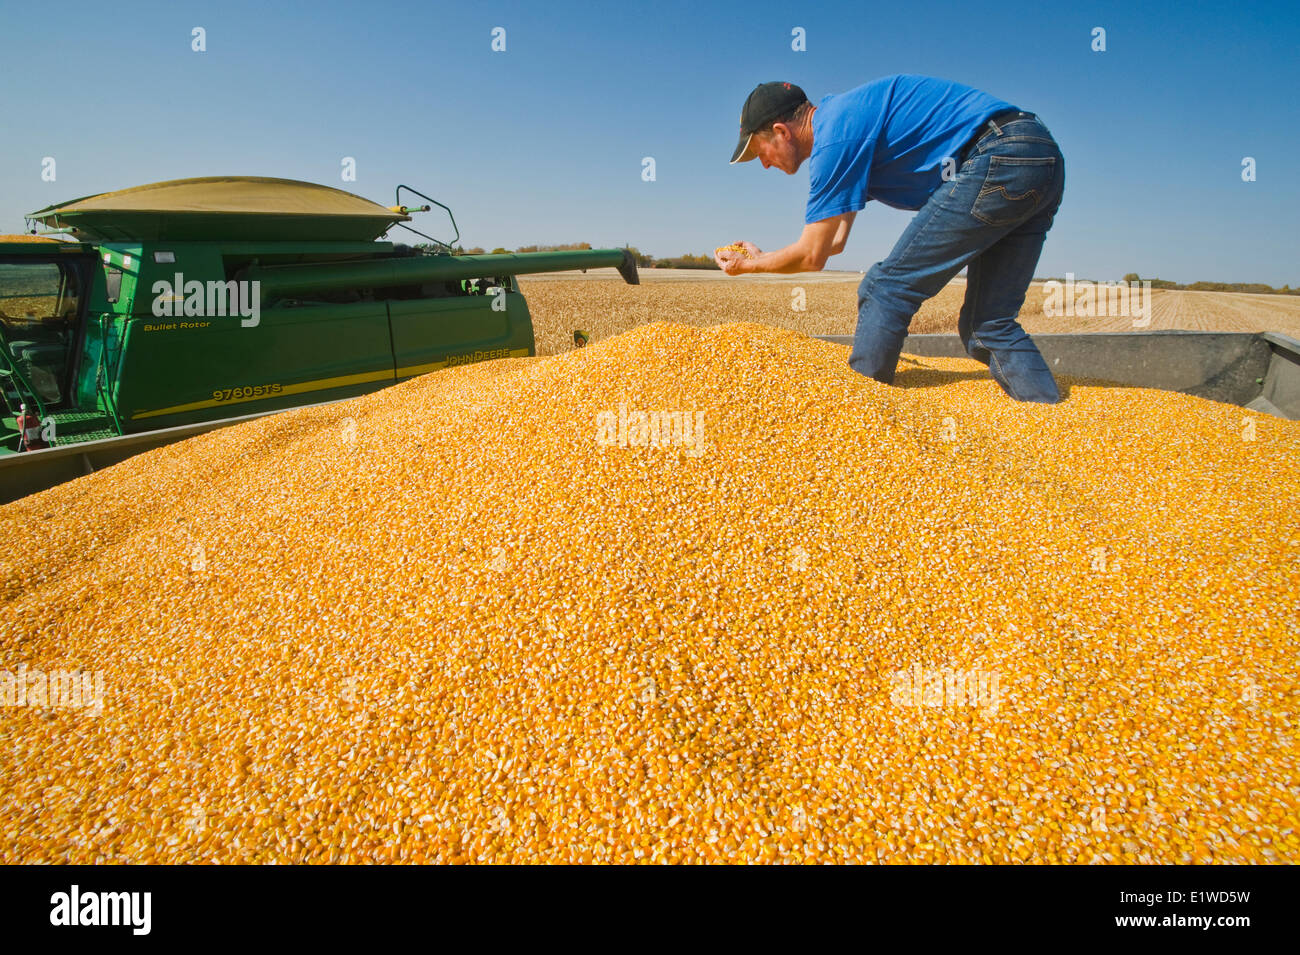 a man examines feed corn (grain corn) in the back of a grain wagon during the harvest near Niverville, Manitoba, - Stock Image